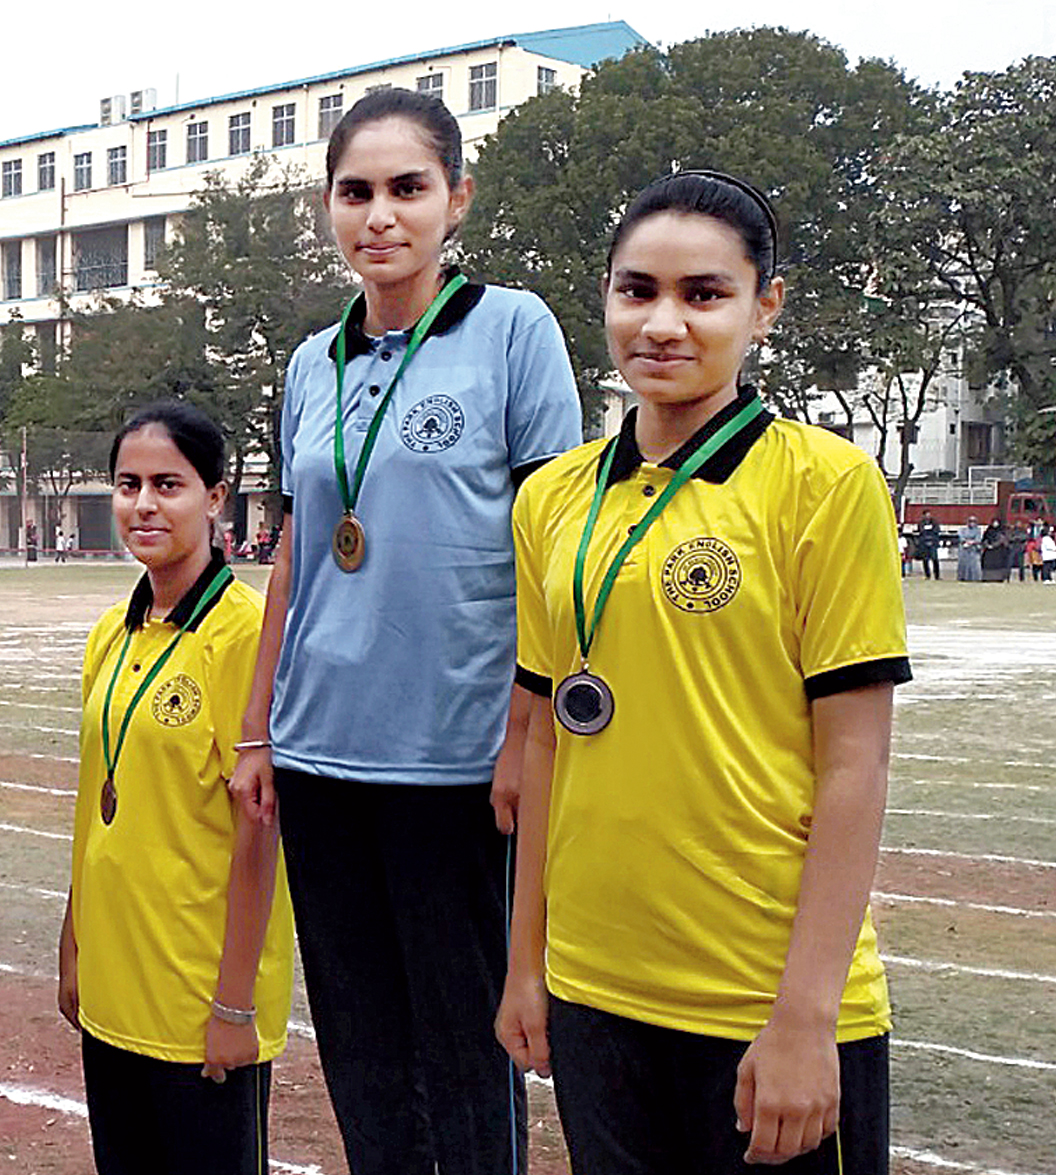 Shakina Khatoon (extreme right) of Class IX who gave one of her silver medals to Kritika at the end of the day